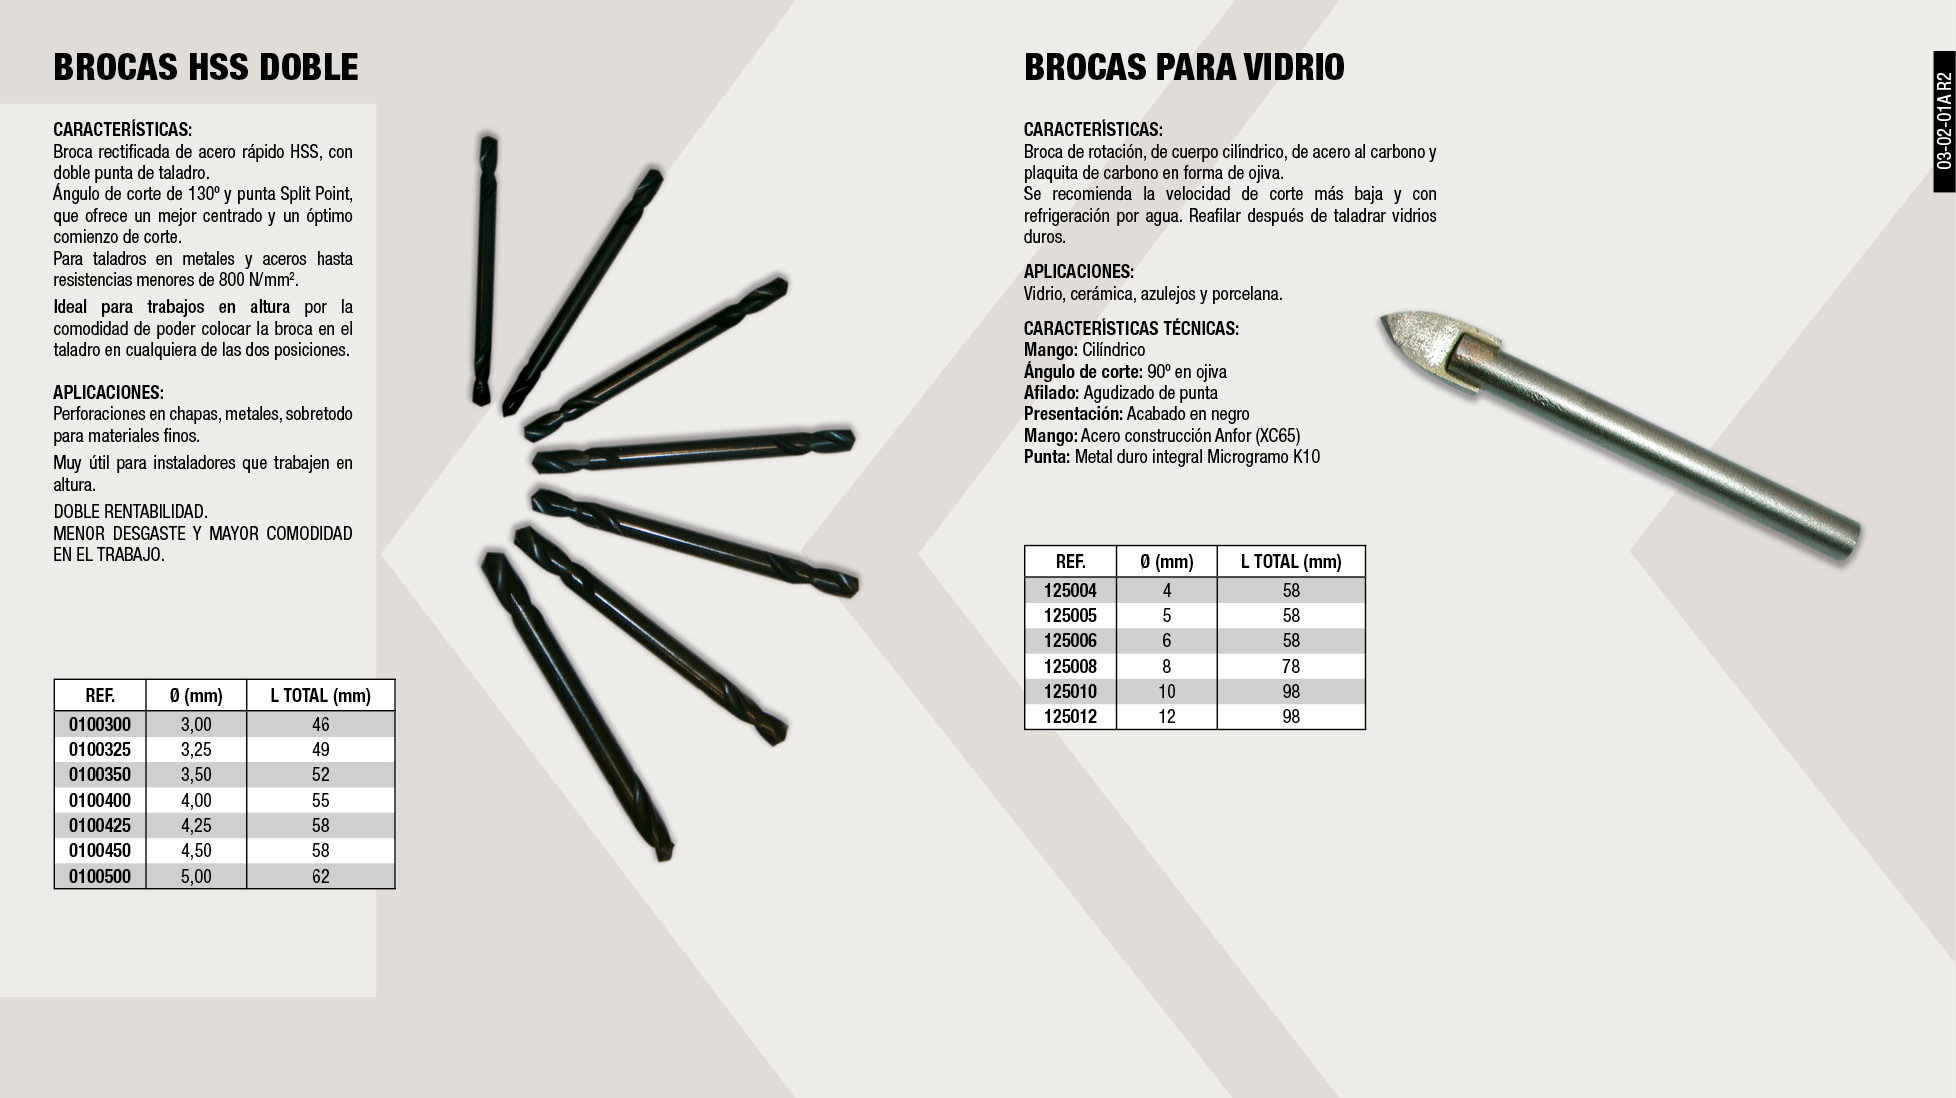 BROCA PORCELANICO EASY 5MM                                  ,  									BROCA HSS DOBLE 4.25 MM                                     ,  									BROCA HSS DOBLE 5.00 MM                                     ,  									BROCA PORCELANICO EASY 10MM                                 ,  									ESTUCHE 5 BROCAS PORCELÁNICO EASY                           ,  									BROCA PORCELANICO EASY 8MM                                  ,  									BROCA HSS DOBLE 3.25 MM                                     ,  									BROCA HSS DOBLE 3.50 MM                                     ,  									BROCA HSS DOBLE 4.50 MM                                     ,  									BROCA HSS DOBLE 3.00 MM                                     ,  									BROCA PORCELANICO EASY 6MM                                  ,  									BROCA PORCELANICO EASY 4MM                                  ,  									BROCA HSS DOBLE 4.00 MM                                     ,